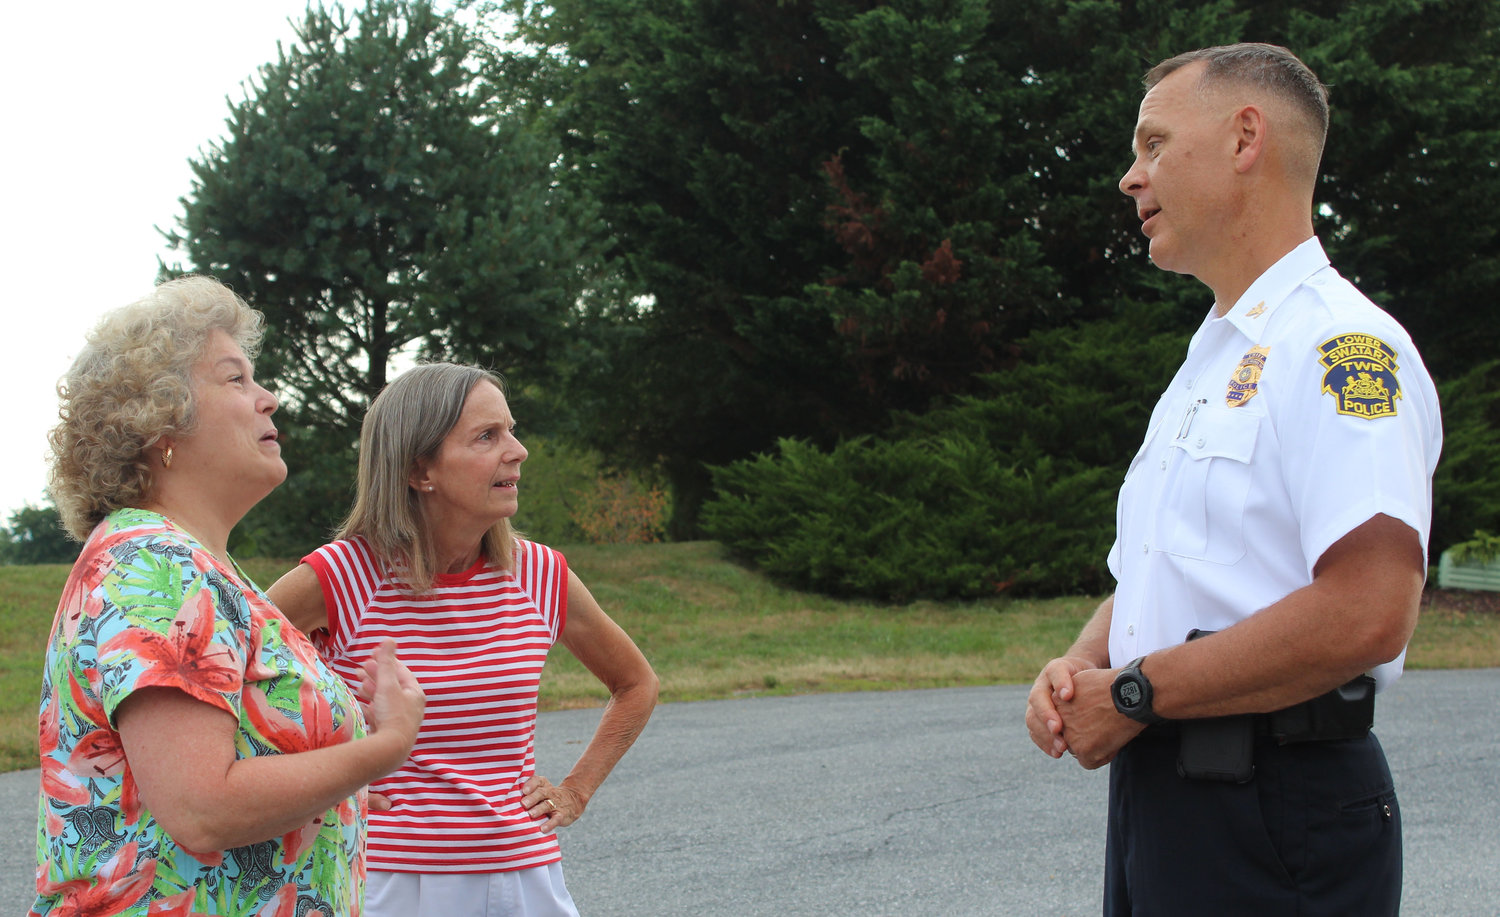 Wendy Kauffman and Rose Walker talk with Lower Swatara Police Chief Jeff Vargo during National Night Out Aug. 6.